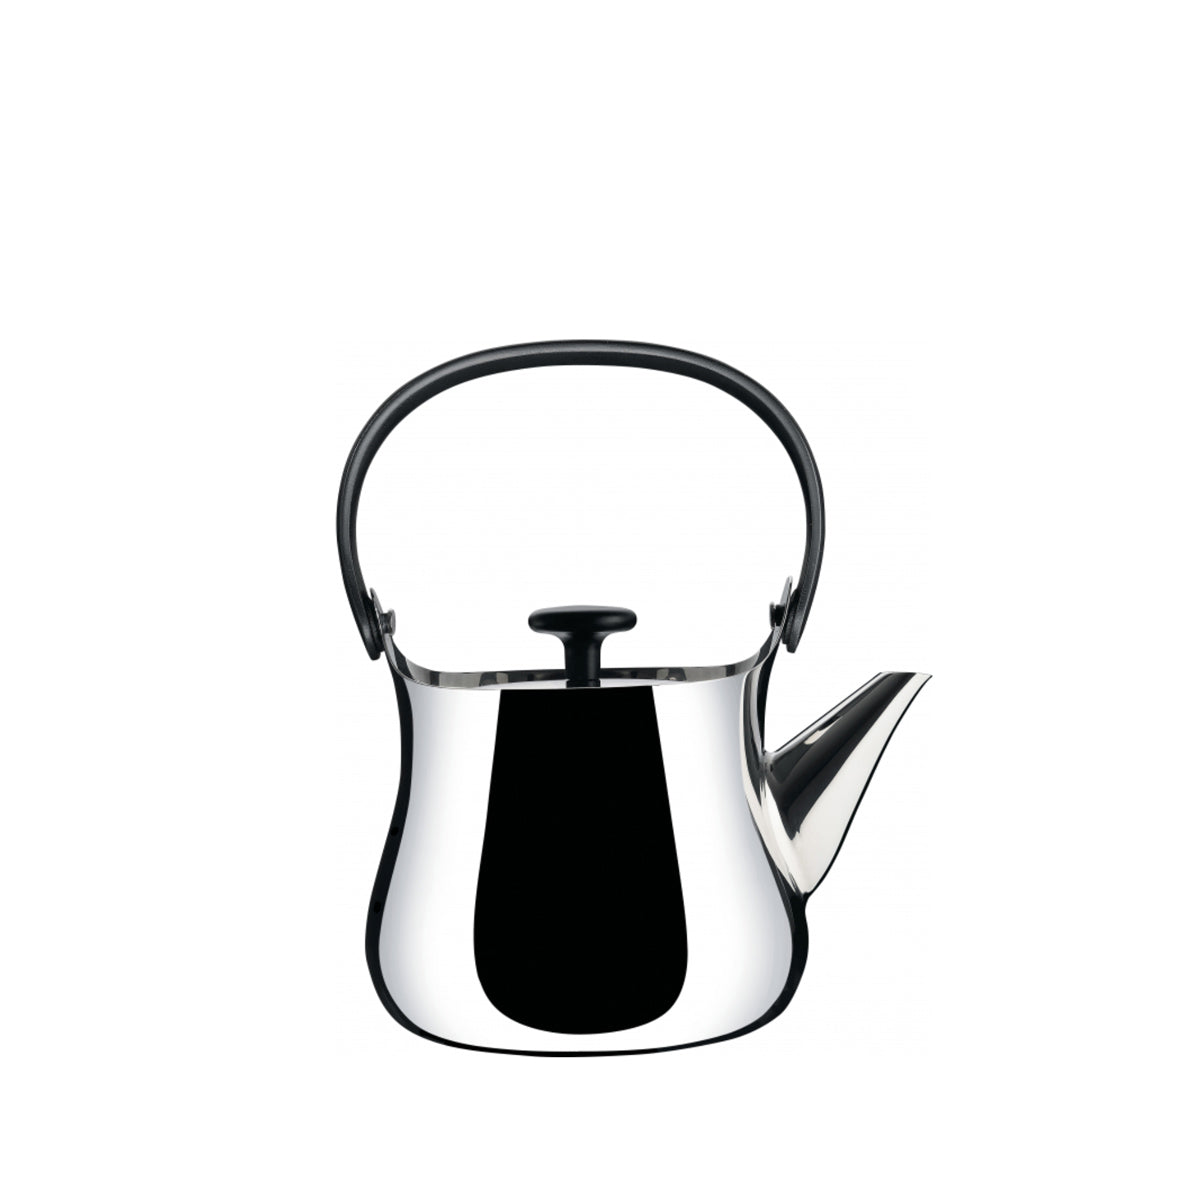 ALESSI  |  CHA KETTLE/TEAPOT  |  STAINLESS STEEL